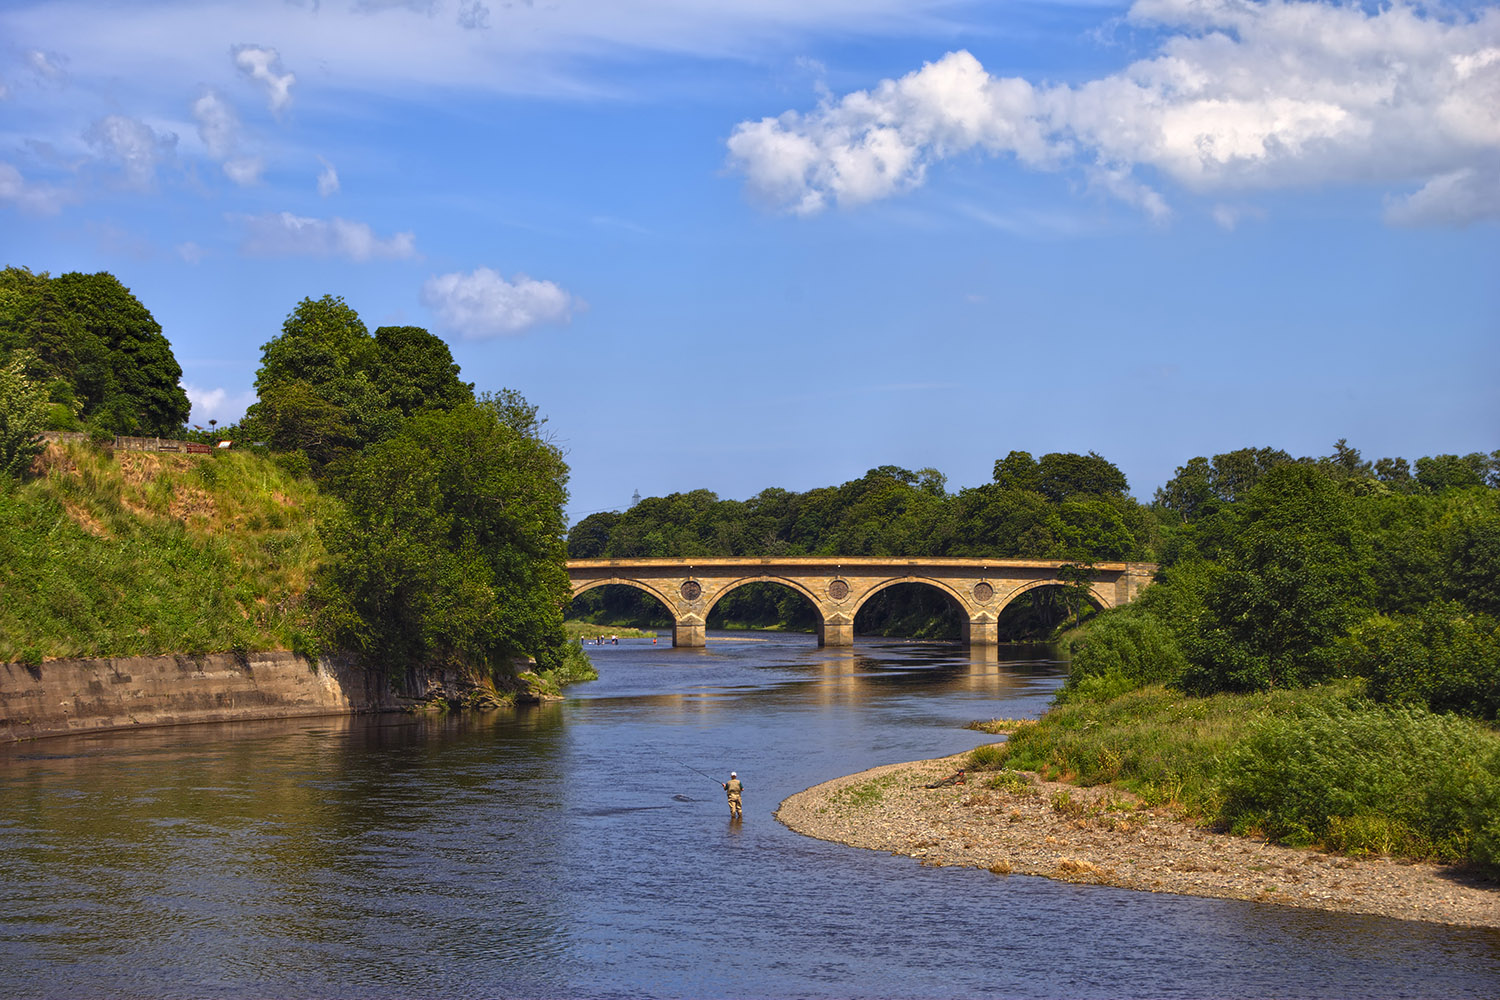 The River Tweed flows across the border region of Scotland and England, a stop on our border raiders tour of Scotland